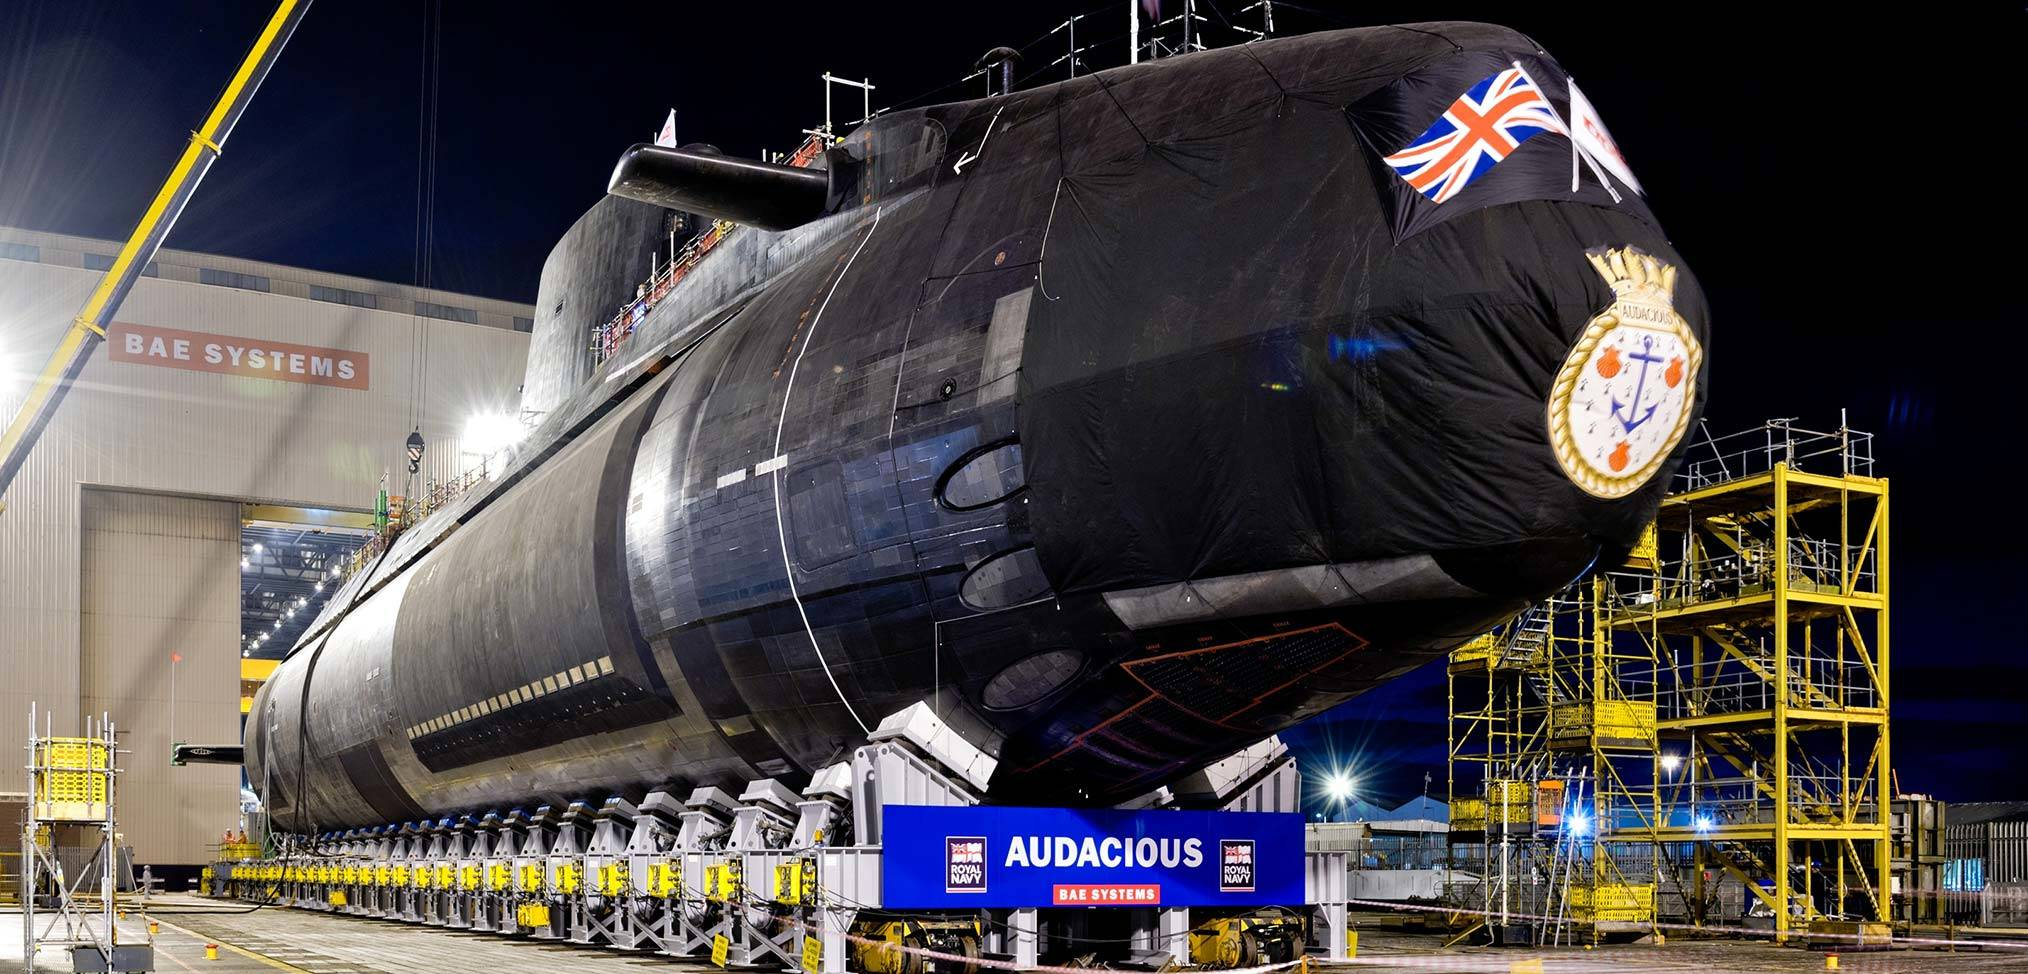 Delivery of HMS Audacious to the Royal Navy delayed by another 17 months